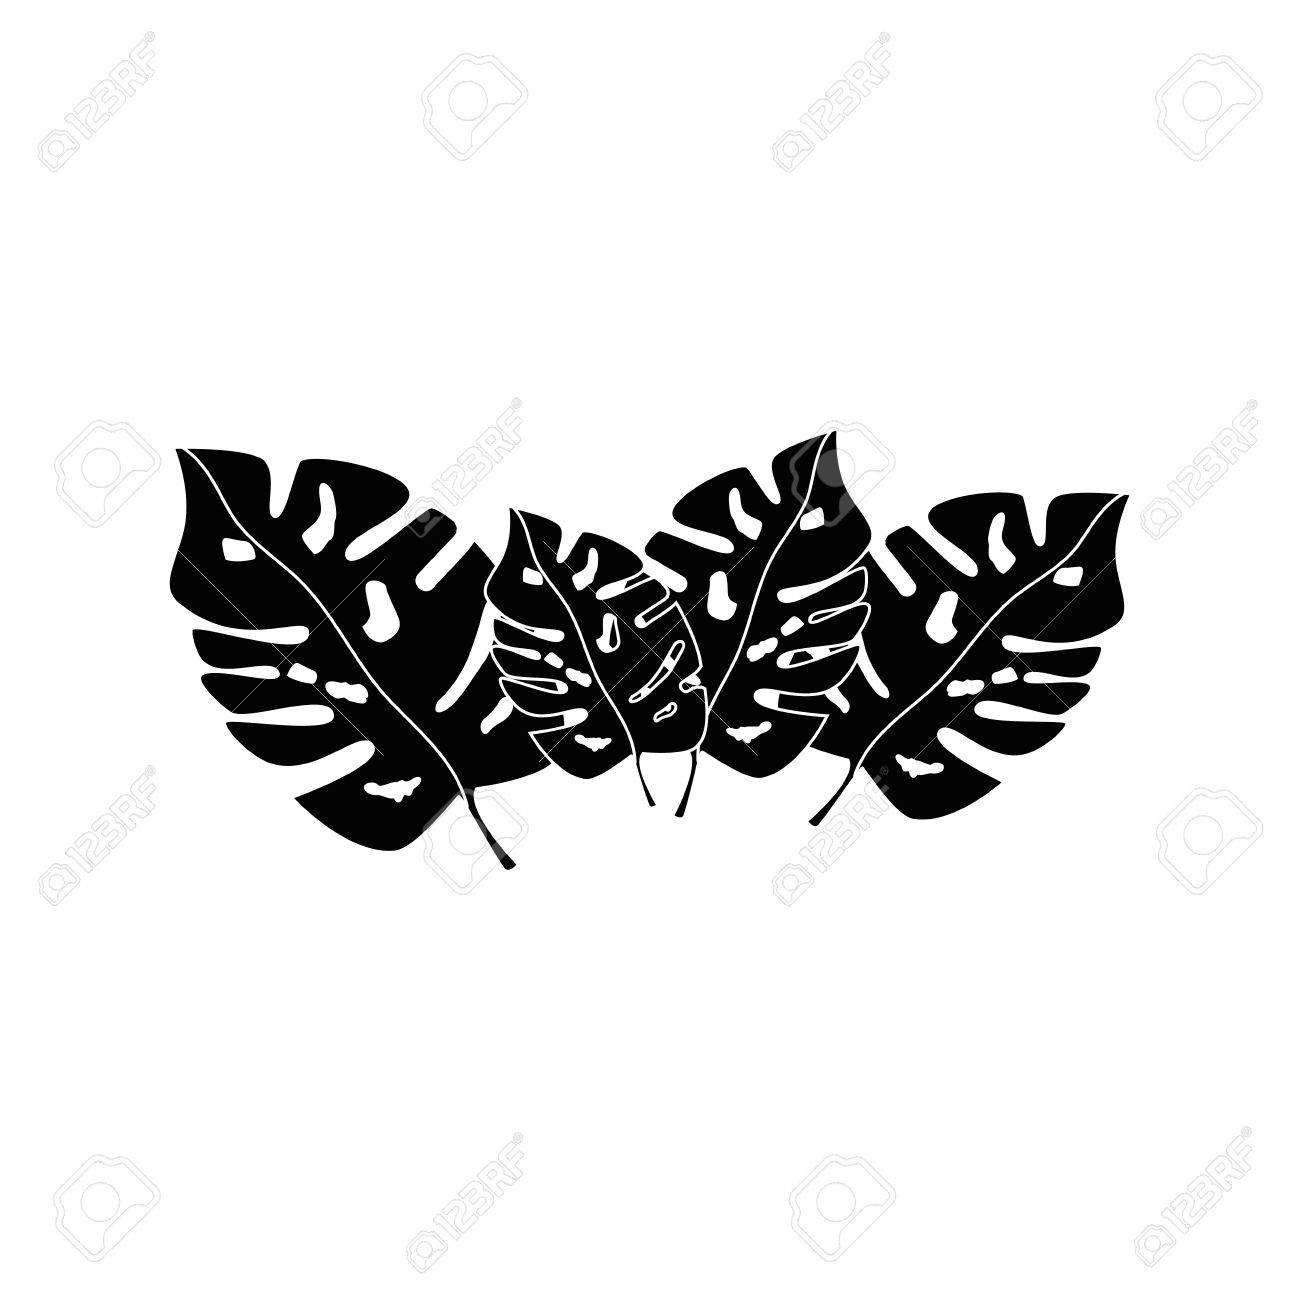 Tropical Leaves Icon Over White Background Vector Illustration Royalty Free Cliparts Vectors And Stock Illustration Image 80871342 Tropical leaves branches watercolor 538627 22 png | 81 mb rar jungle. tropical leaves icon over white background vector illustration